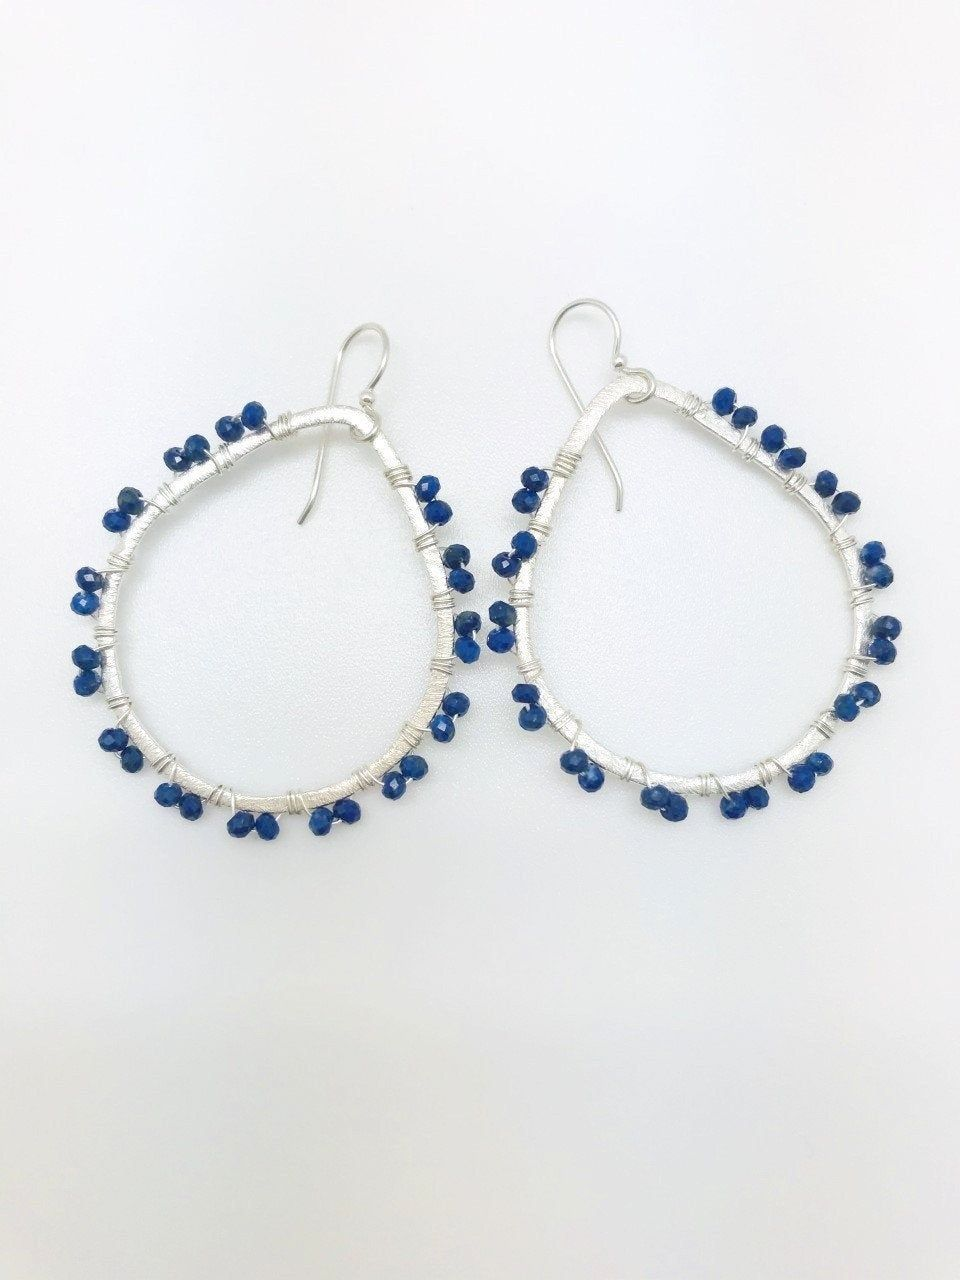 Golden creole earrings Blue Moon with Lapis-Lazuli beads mother-of-pearl little stars moon faceted drops Lapis-Lazuli